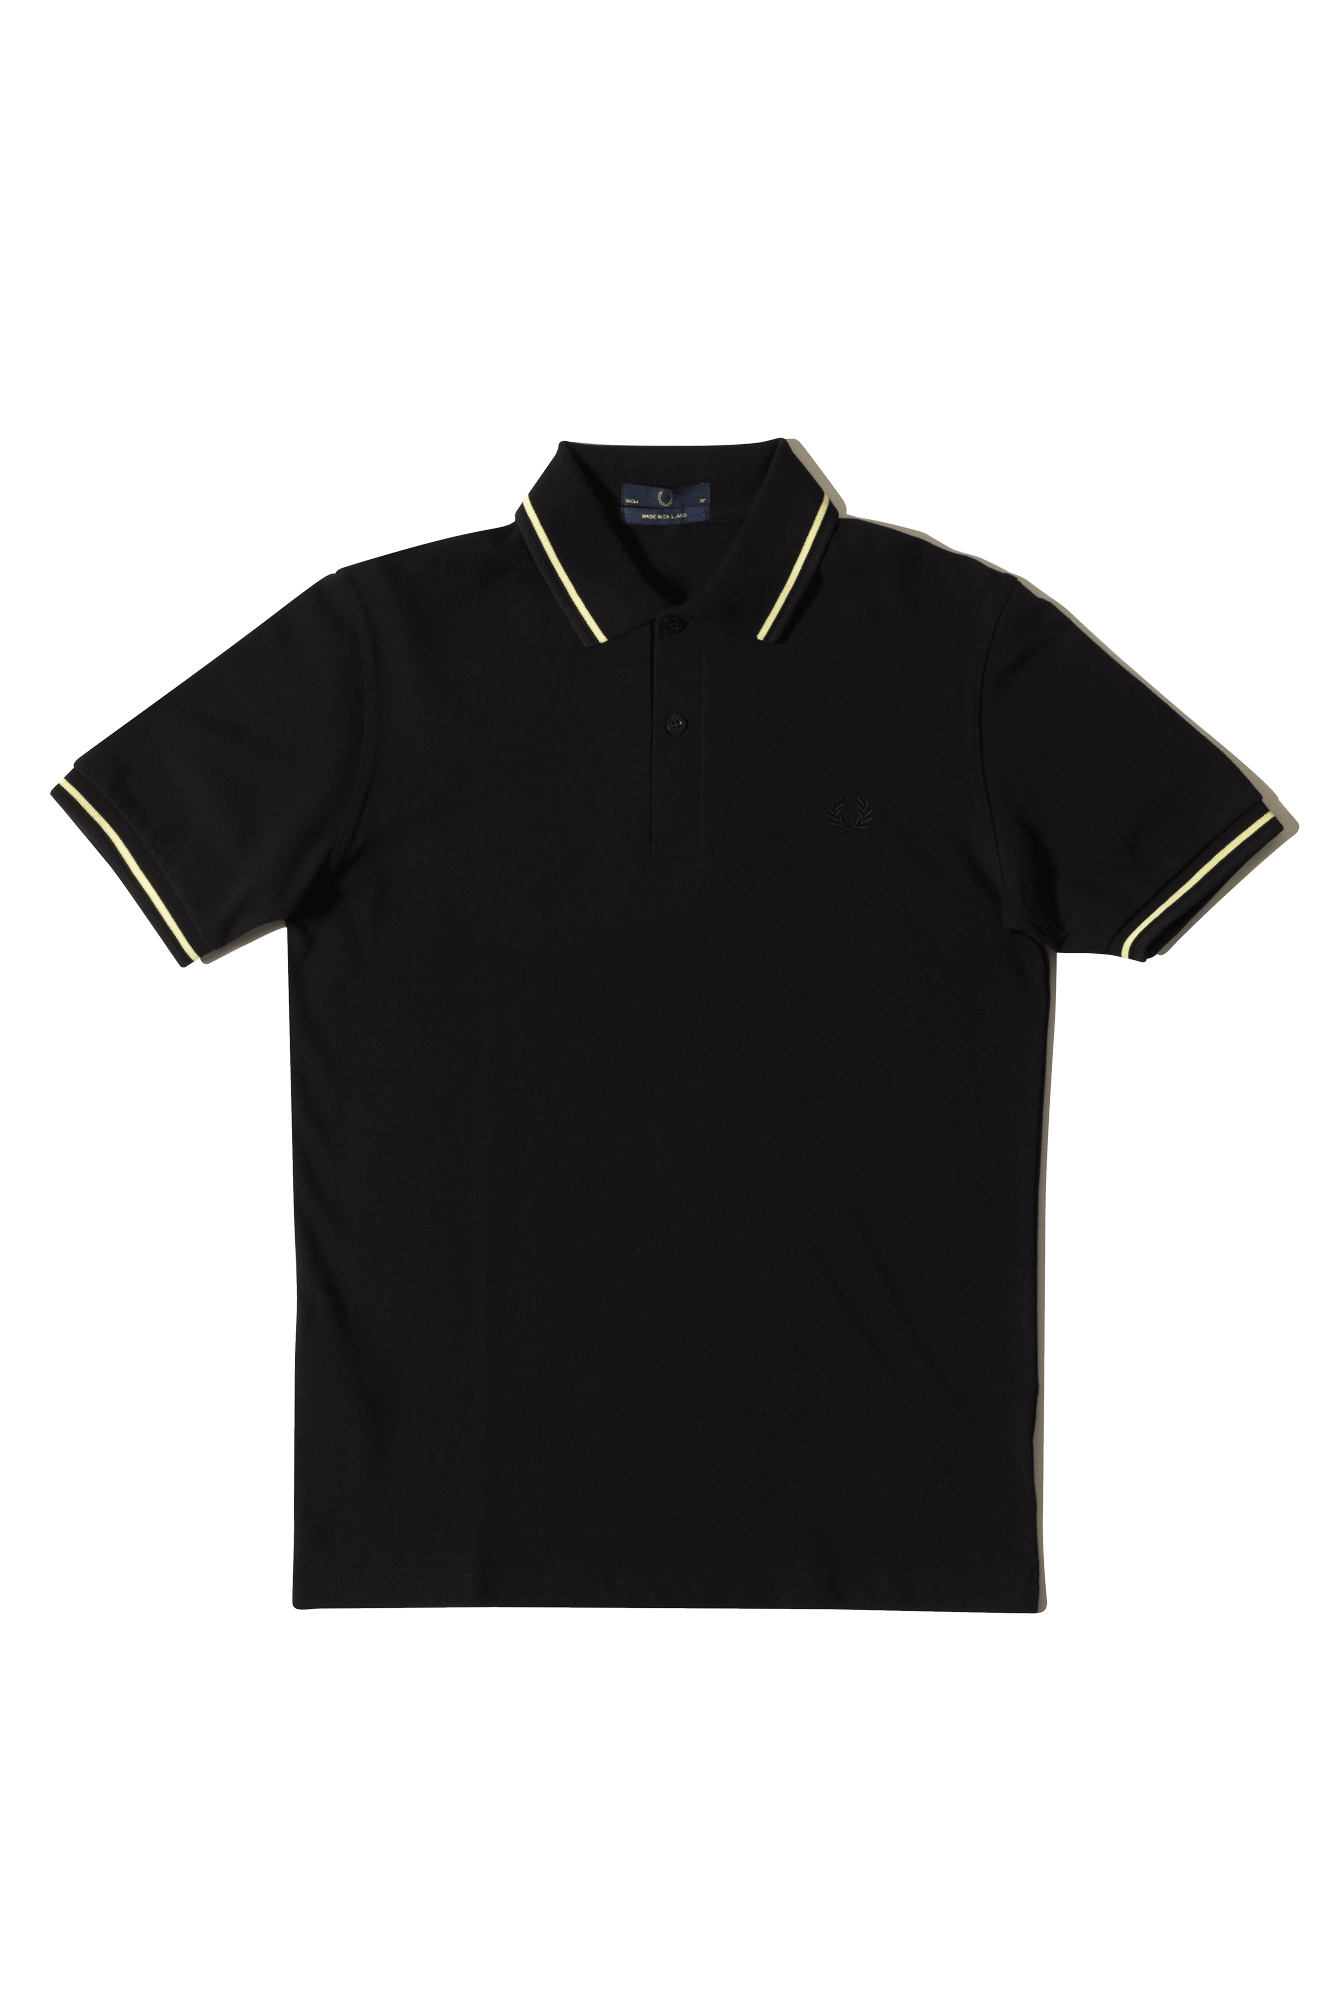 Fred Perry Polo Twin Tipped Fred Perry Shirt Black M12E75#000#C0010#44 - One Block Down